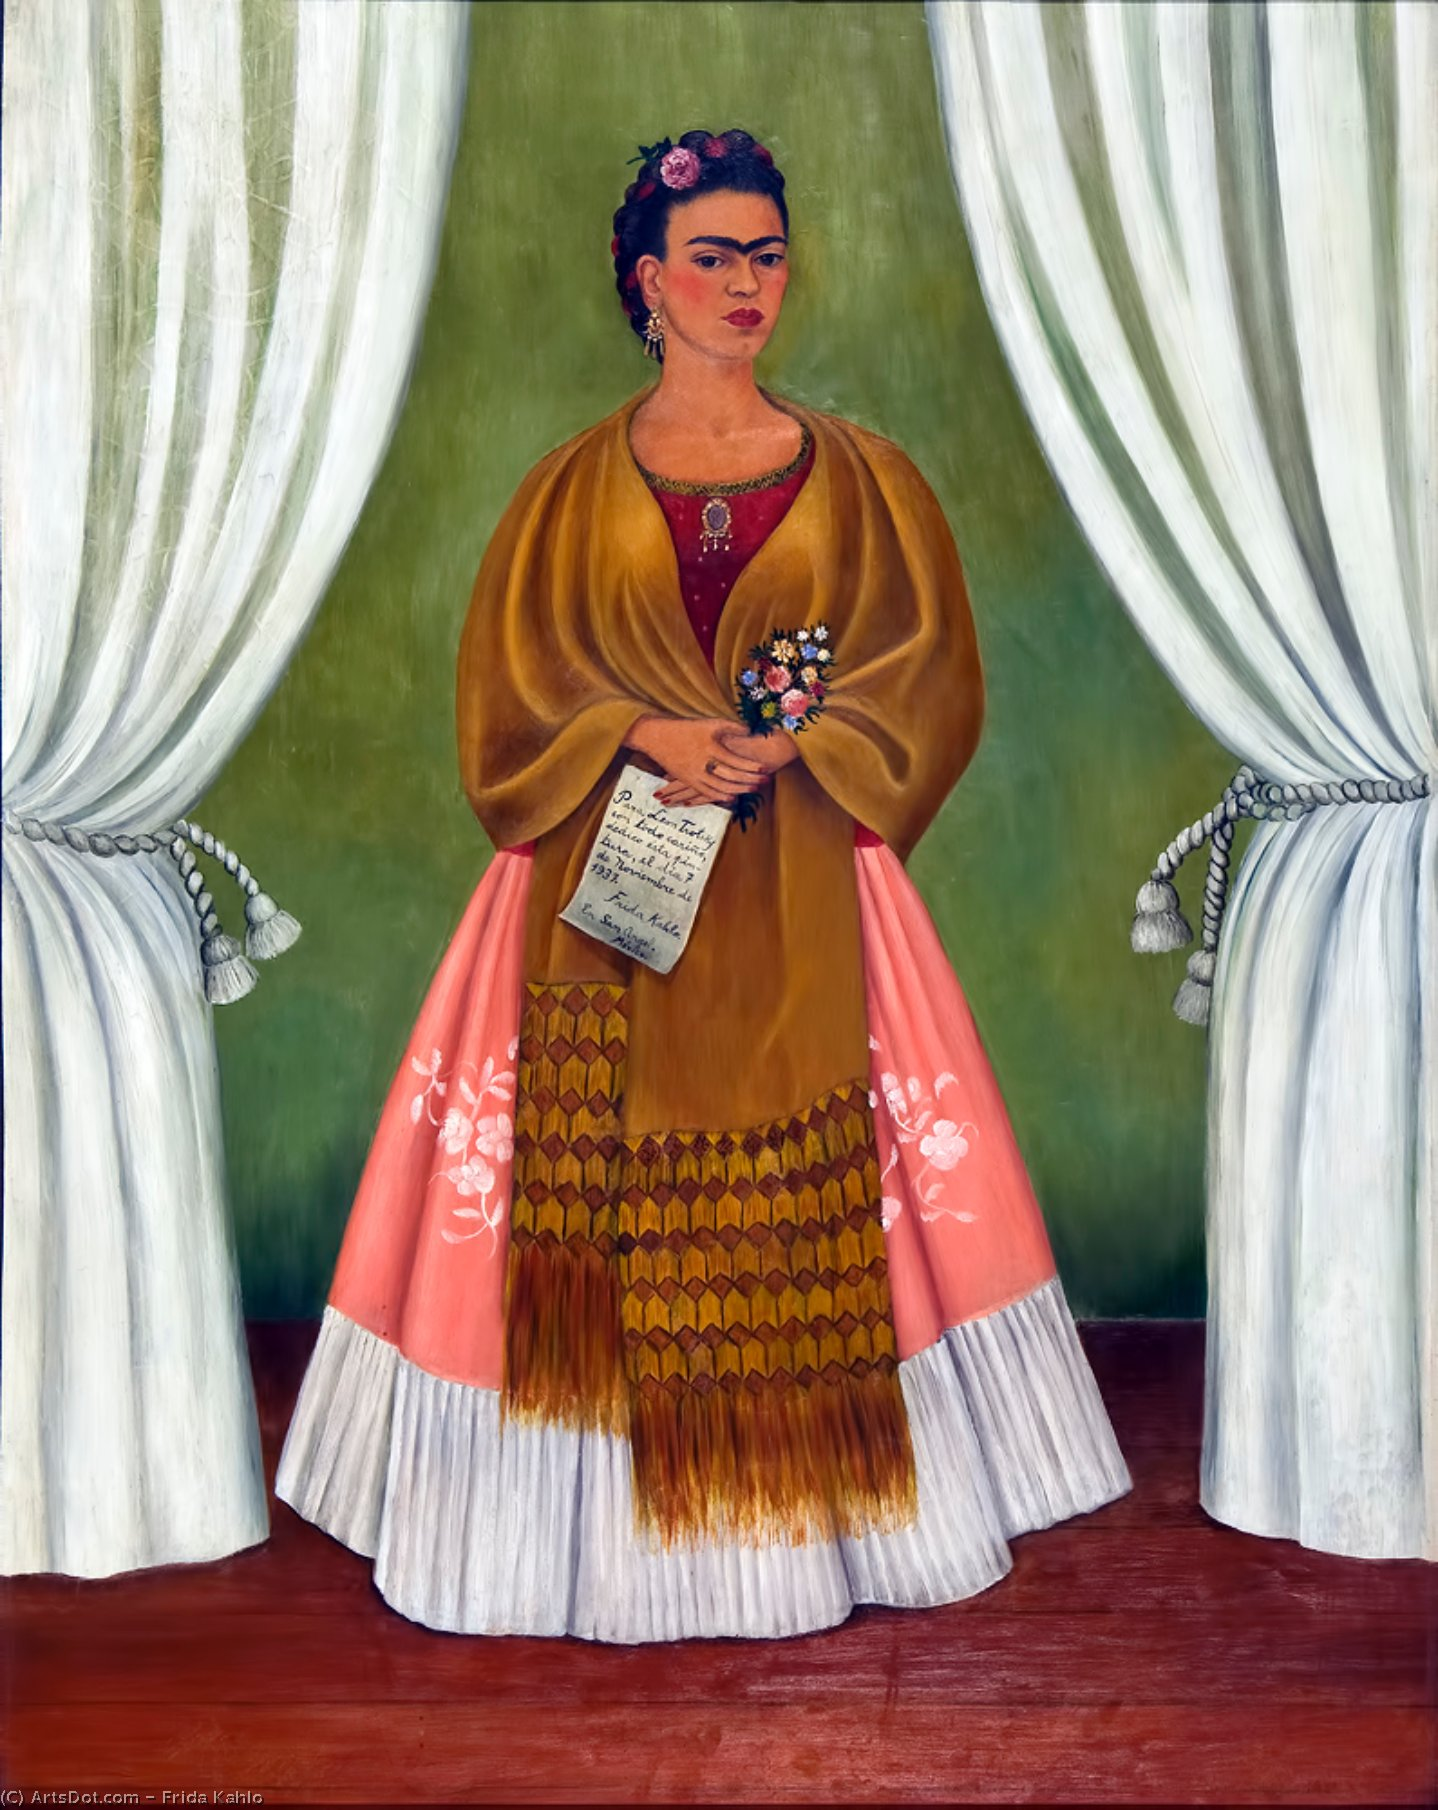 Self Portrait (Dedicated to Leon Trotsky) by Frida Kahlo (1907-1954, Mexico)